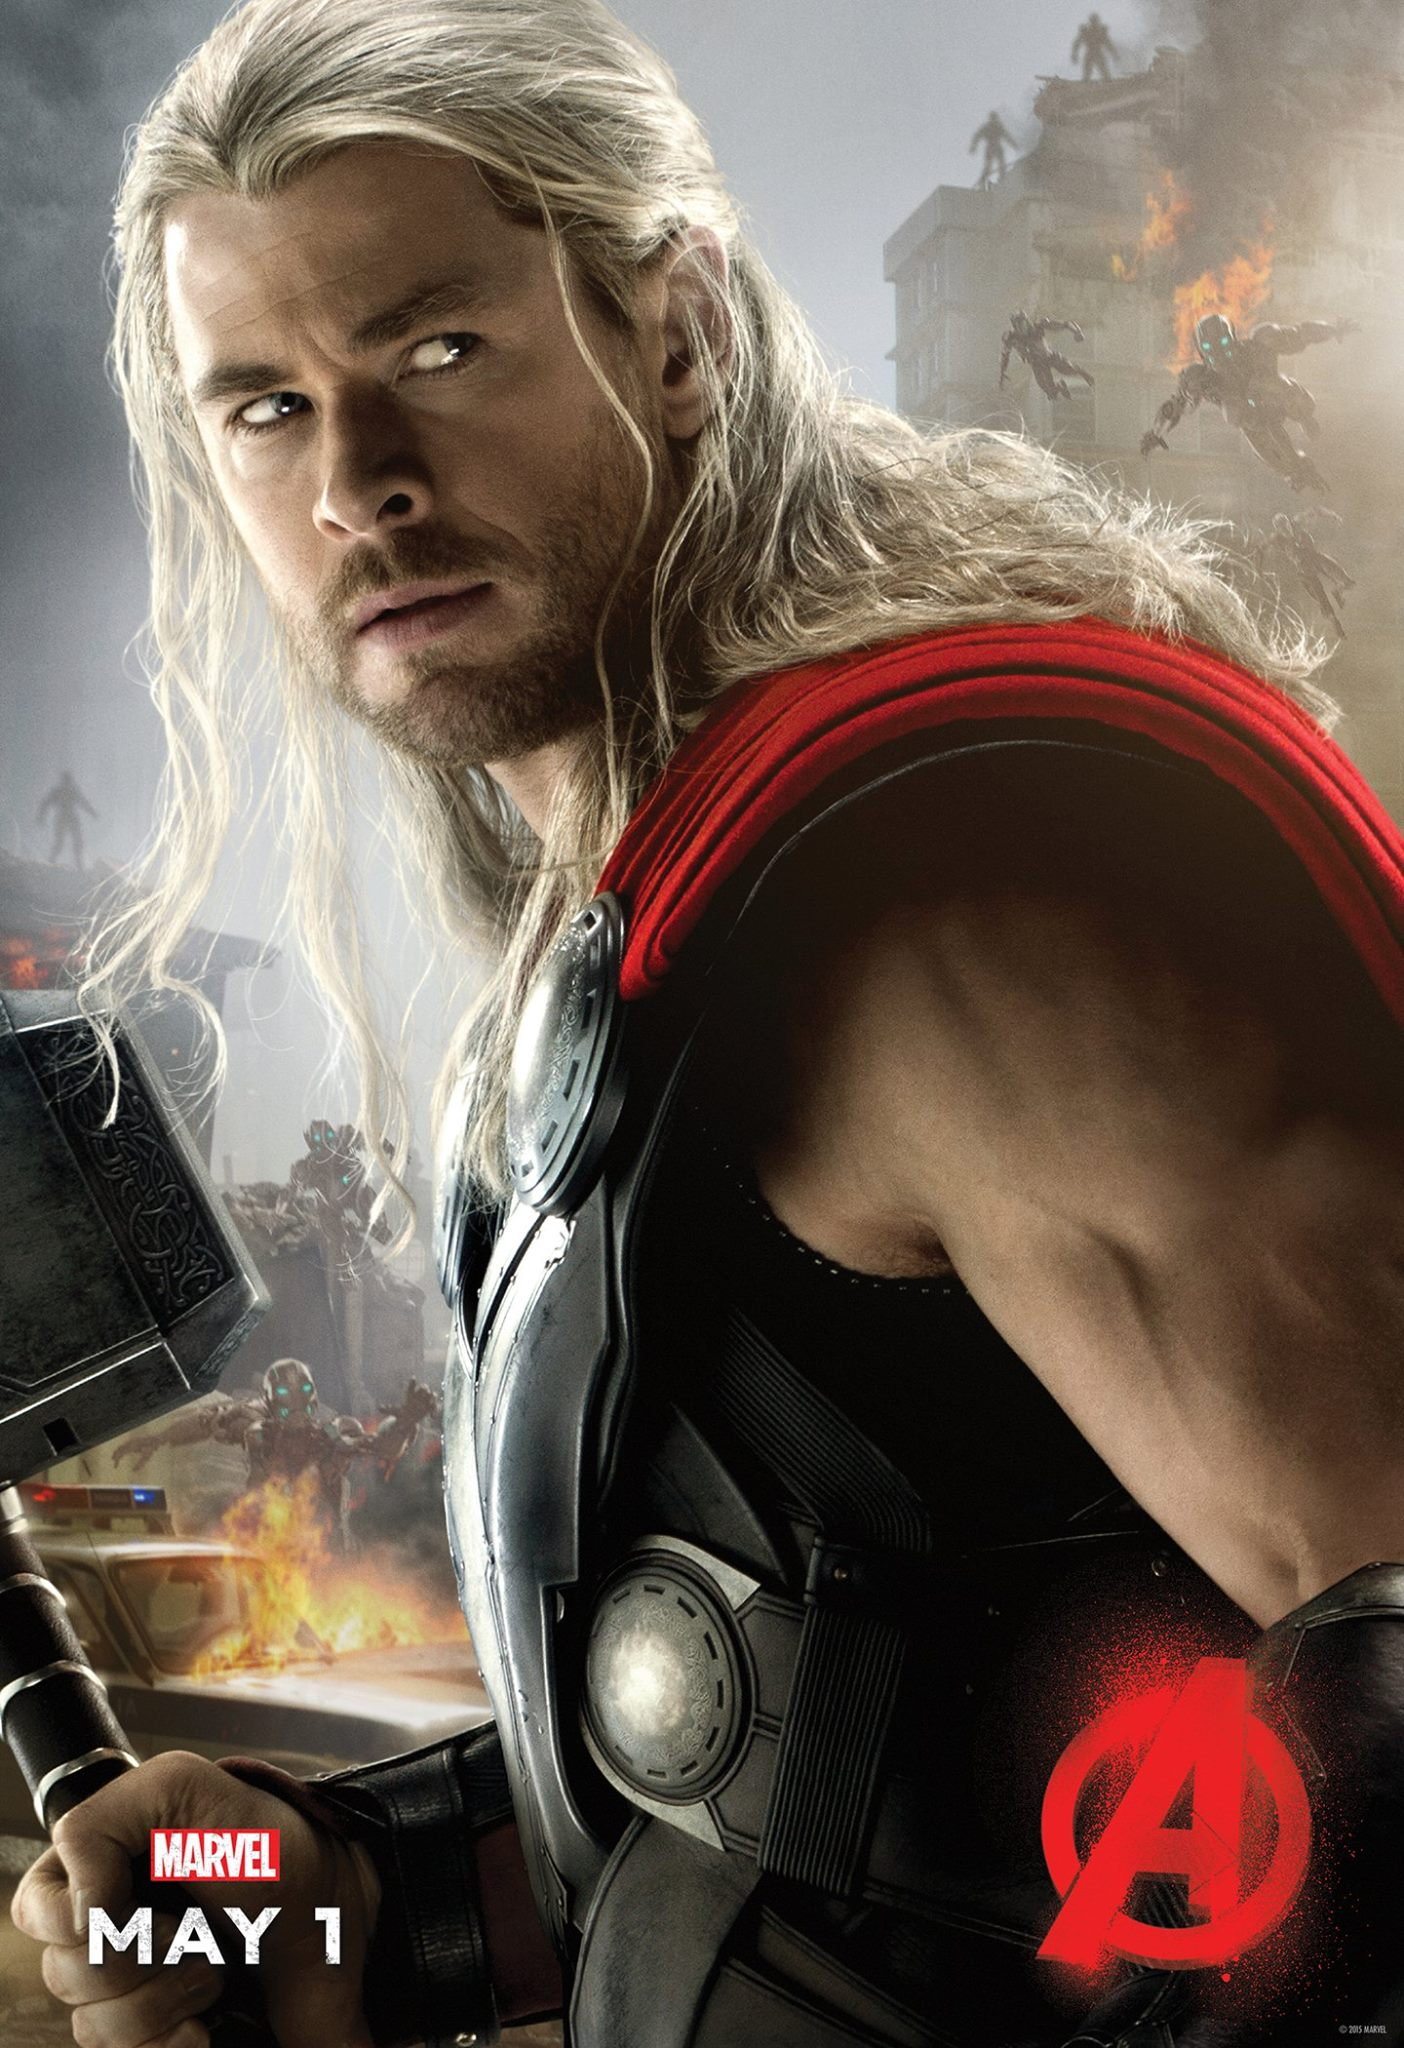 Avengers Age of Ultron Poster Thor - blackfilm.com/read ...